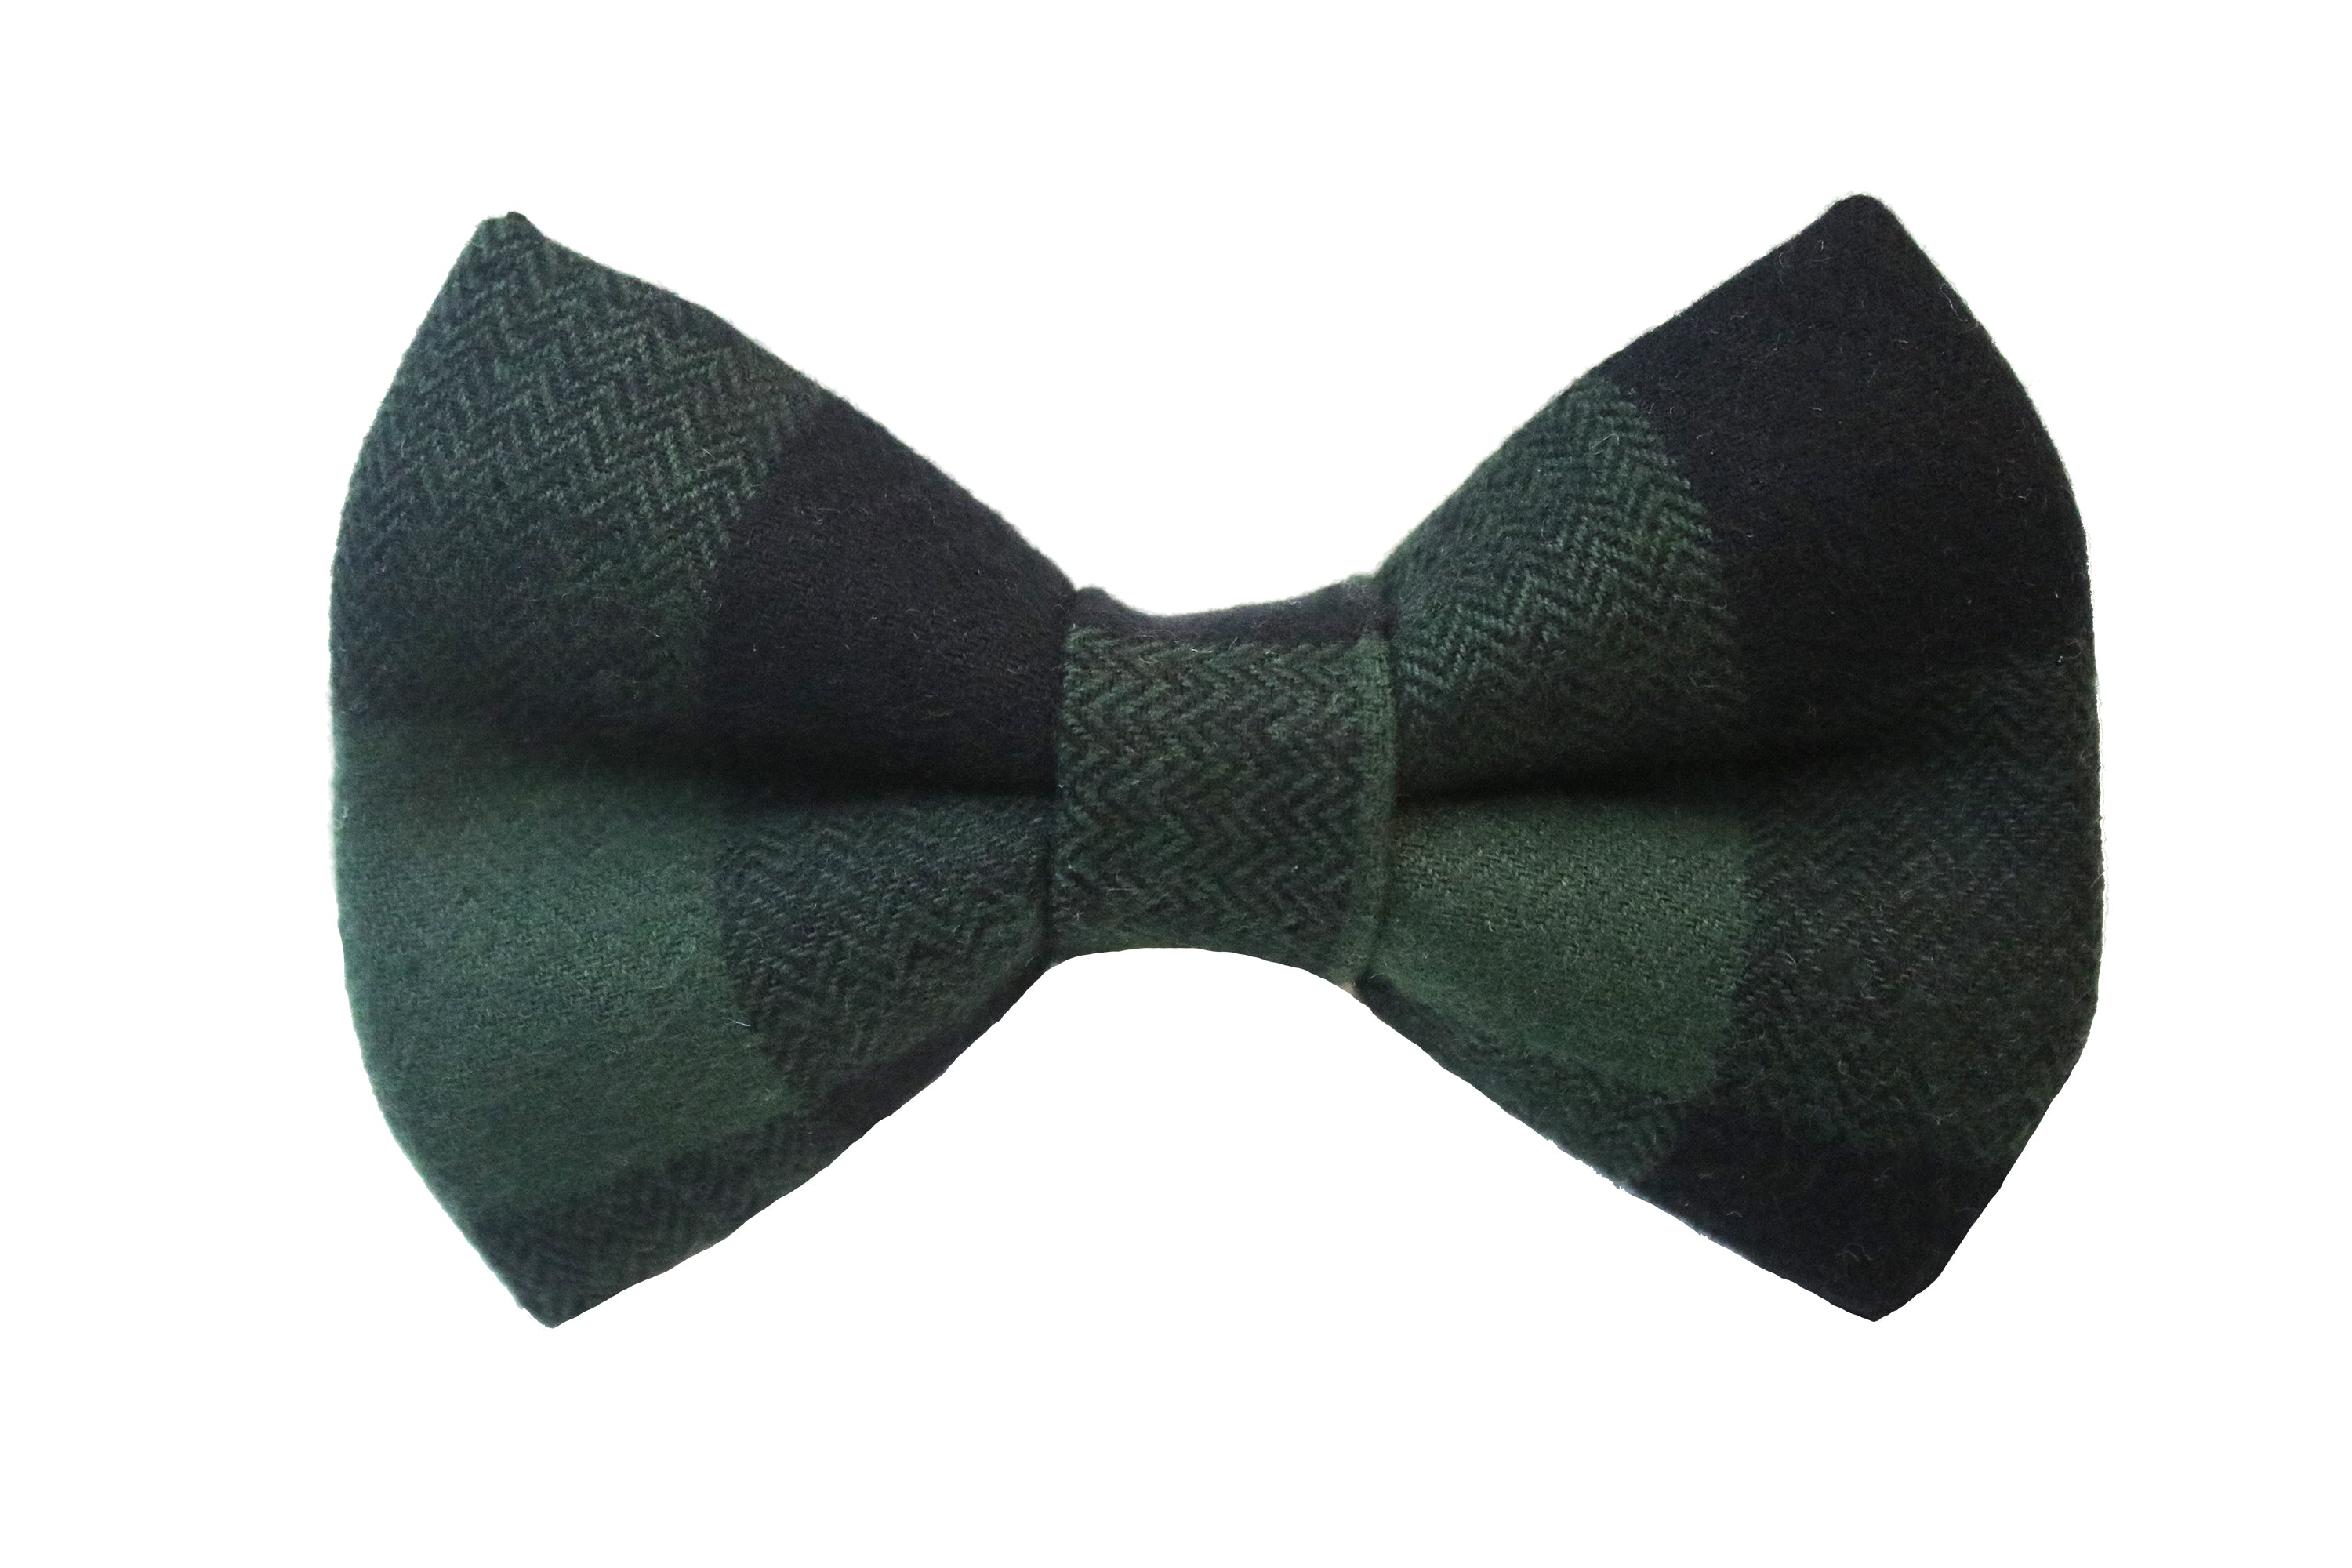 Clove Flannel Bow Tie